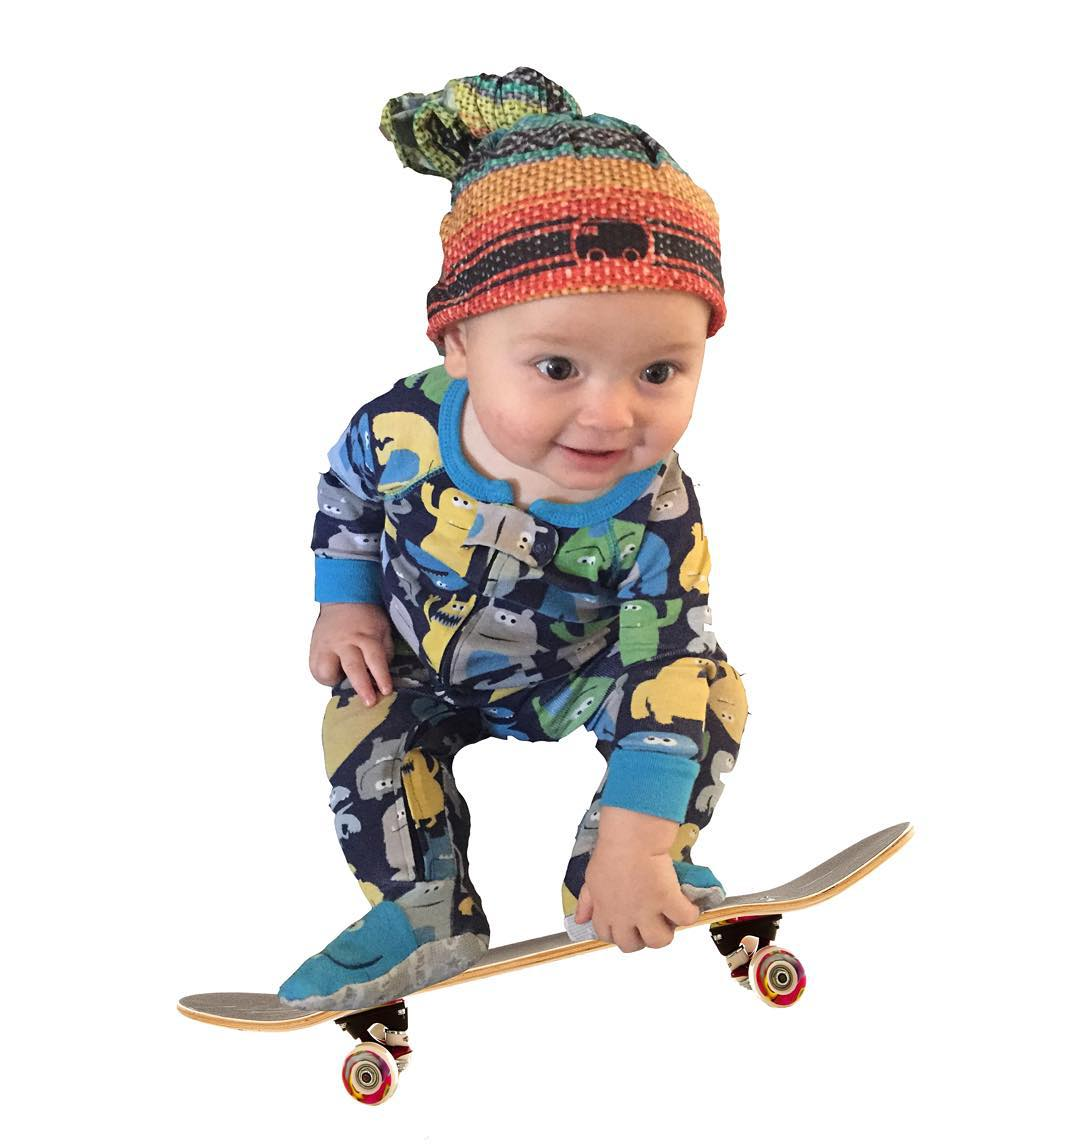 Stocking stuffers to get the whole family as stoked as baby Teddy. Get yours now www.stokedgoods.com